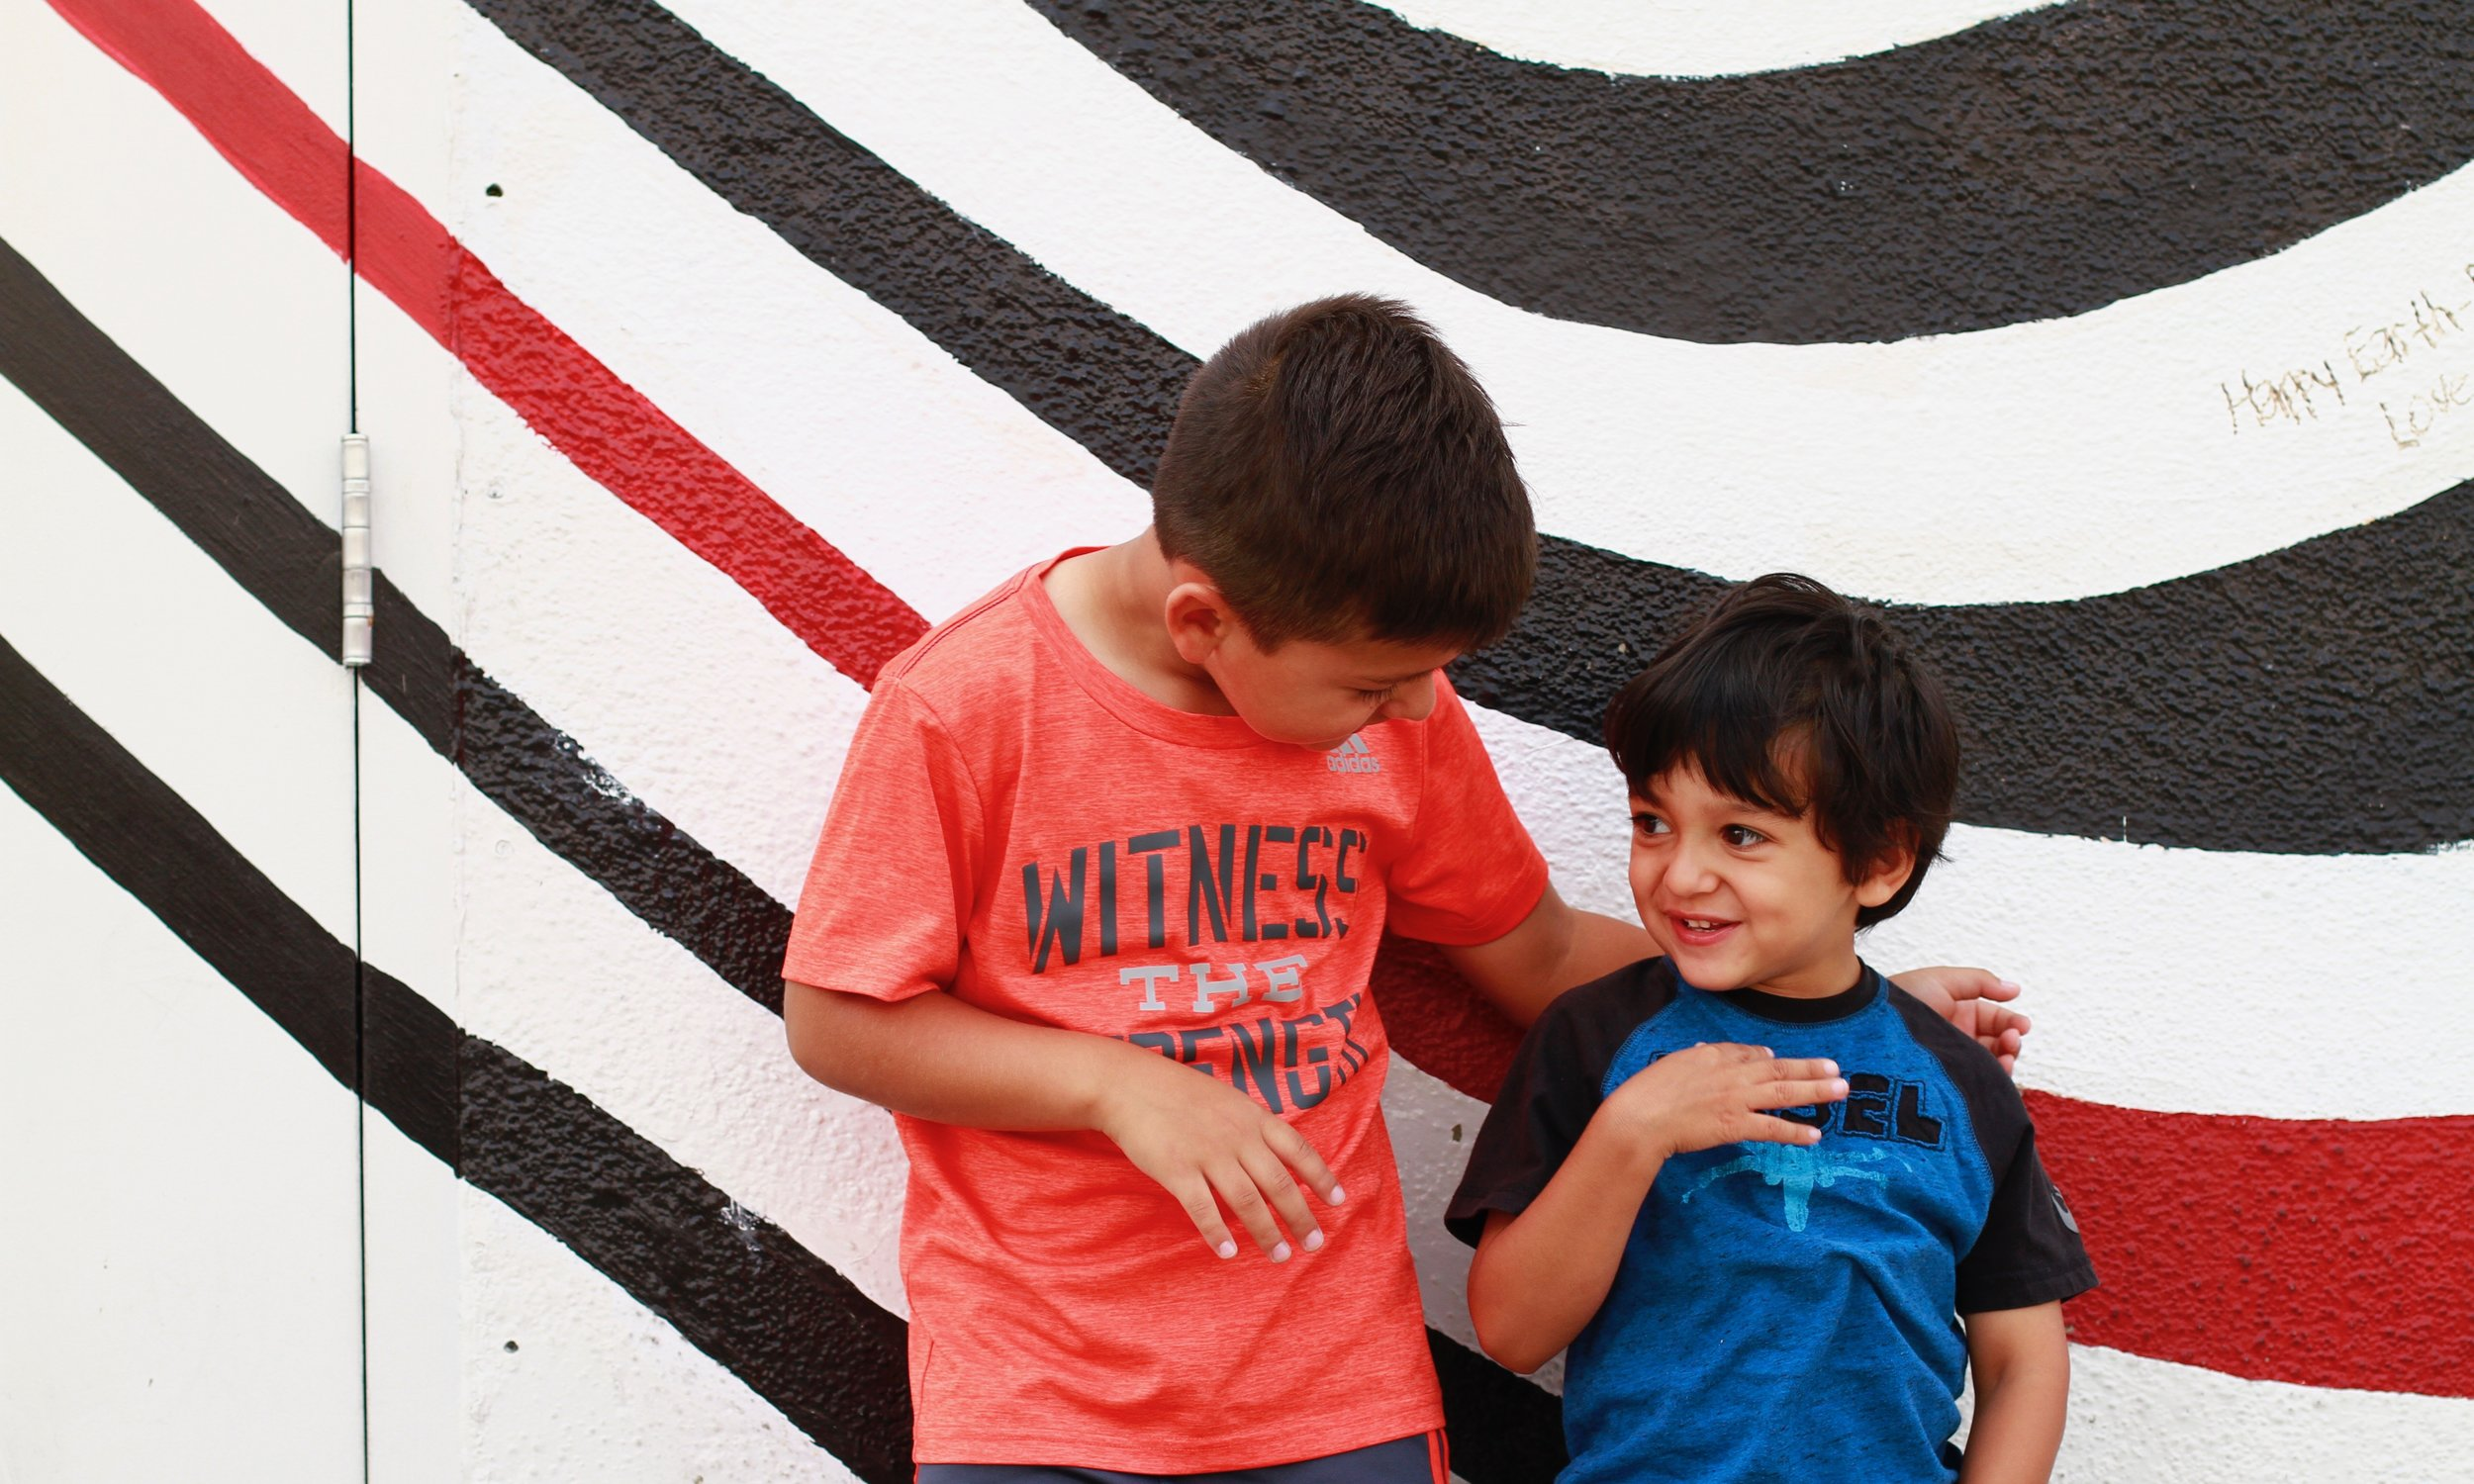 Our sons Samuel (left) and Joseph share a moment in front of the Elliott Smith tribute wall in Los Angeles, CA.